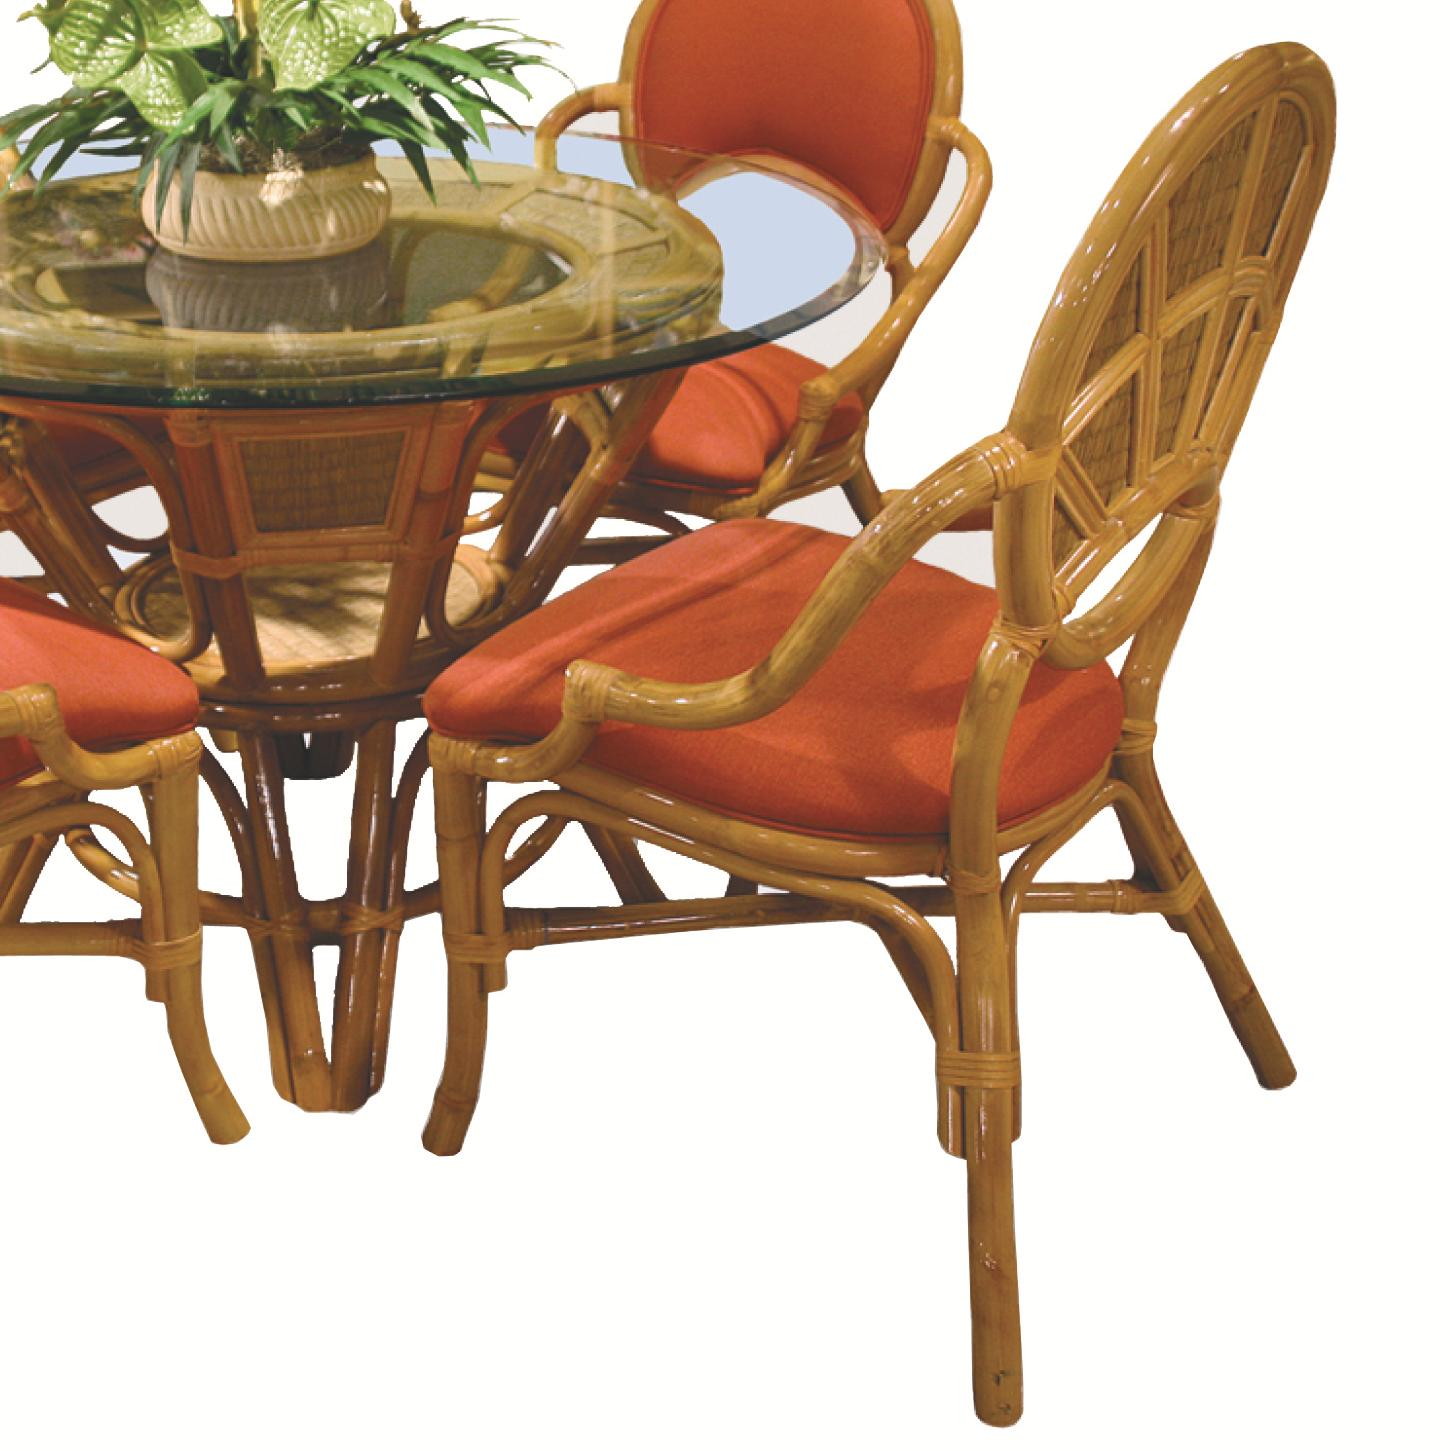 381 Collection Wicker Rattan Dining Arm Chair by Capris Furniture at Esprit Decor Home Furnishings